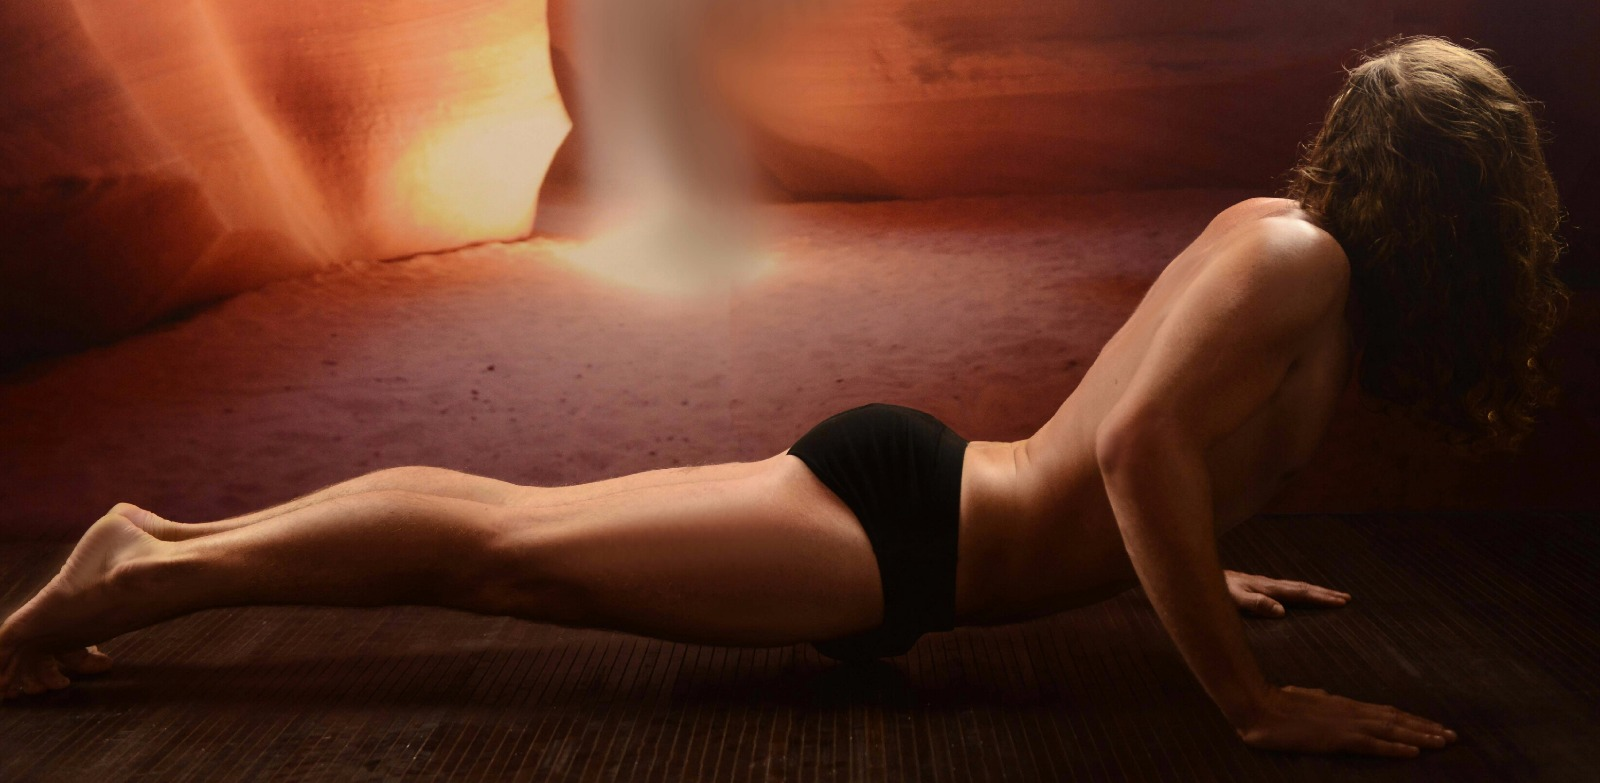 Phone numbers  of parlors erotic massage  in Valencia, Valencia